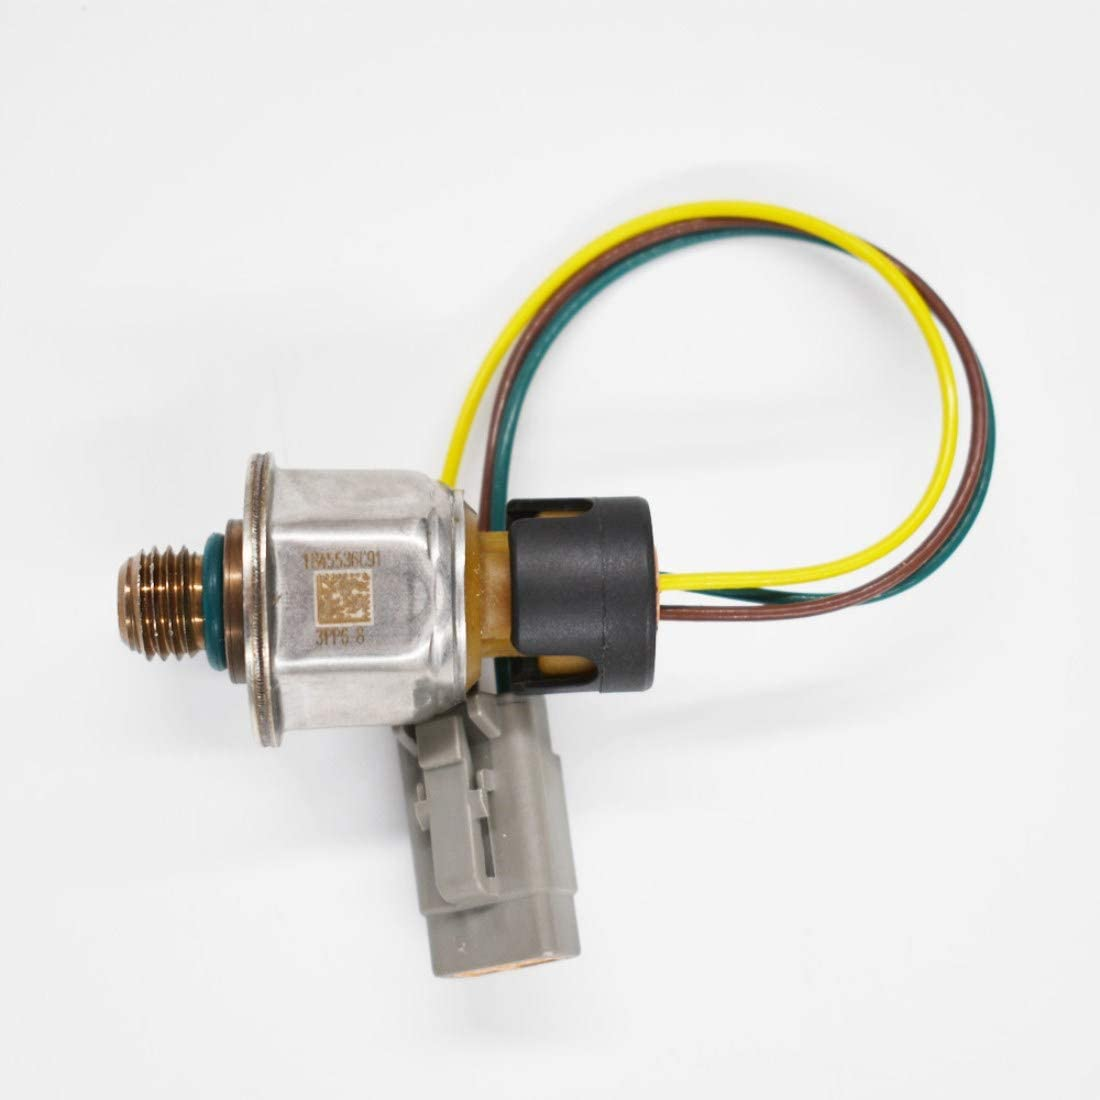 WFLNHB Fuel Pressure Sensor ICP Nav Fit for Limited time free shipping 5 ☆ popular Internitional